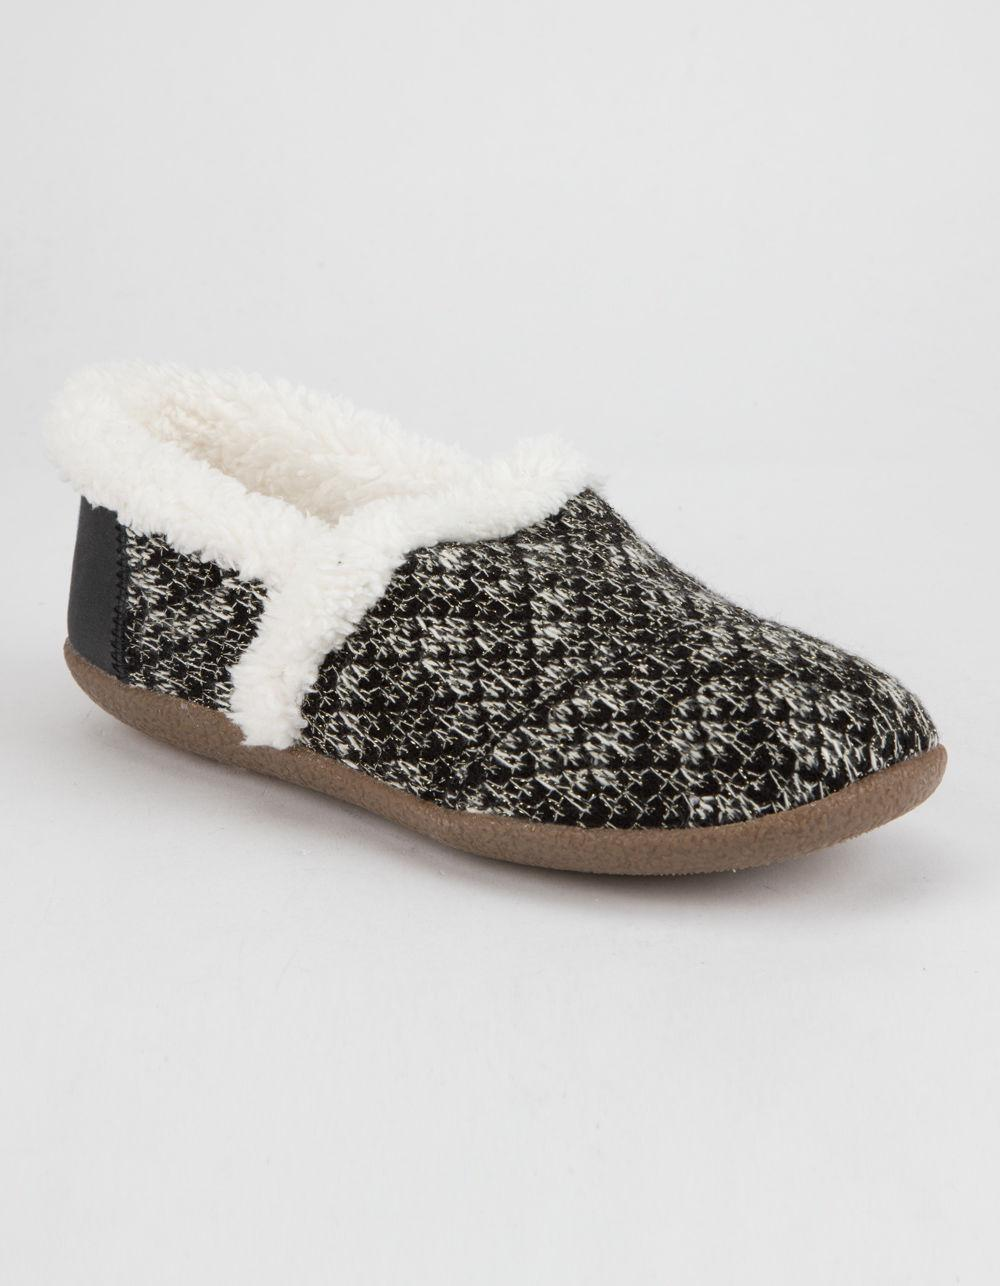 4b808369ba6 TOMS Black Sparkle Knit Womens Slippers in Black - Lyst